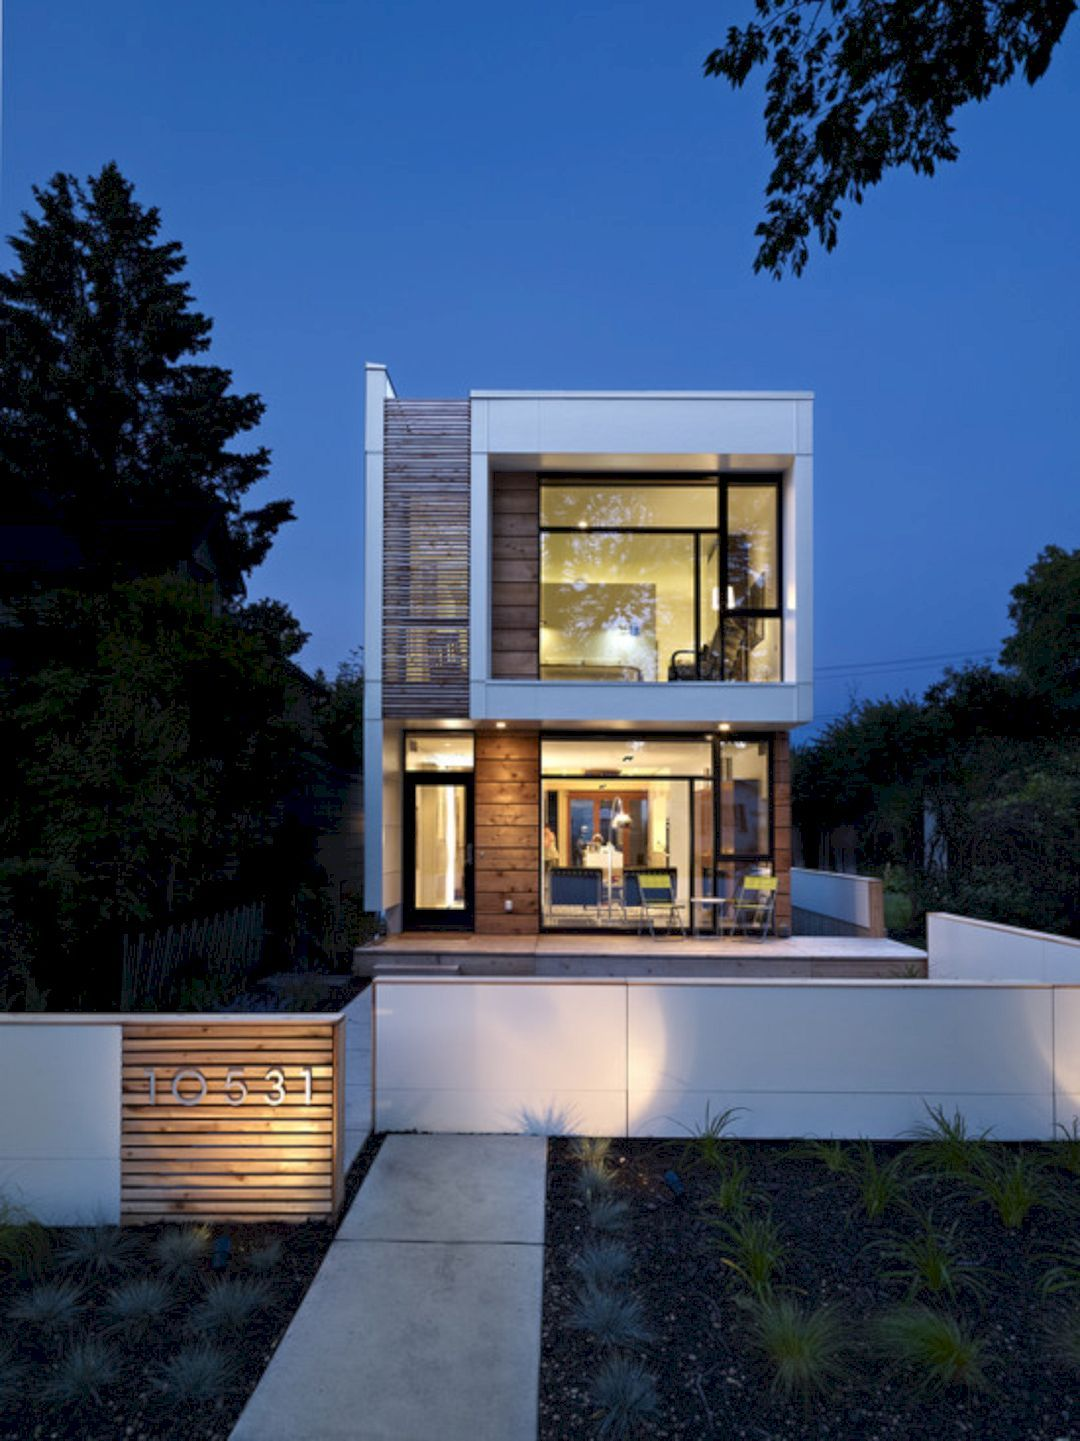 Facade House Small Modern Home Cool House Designs: Modern House Facades, Small House Exteriors, Facade House